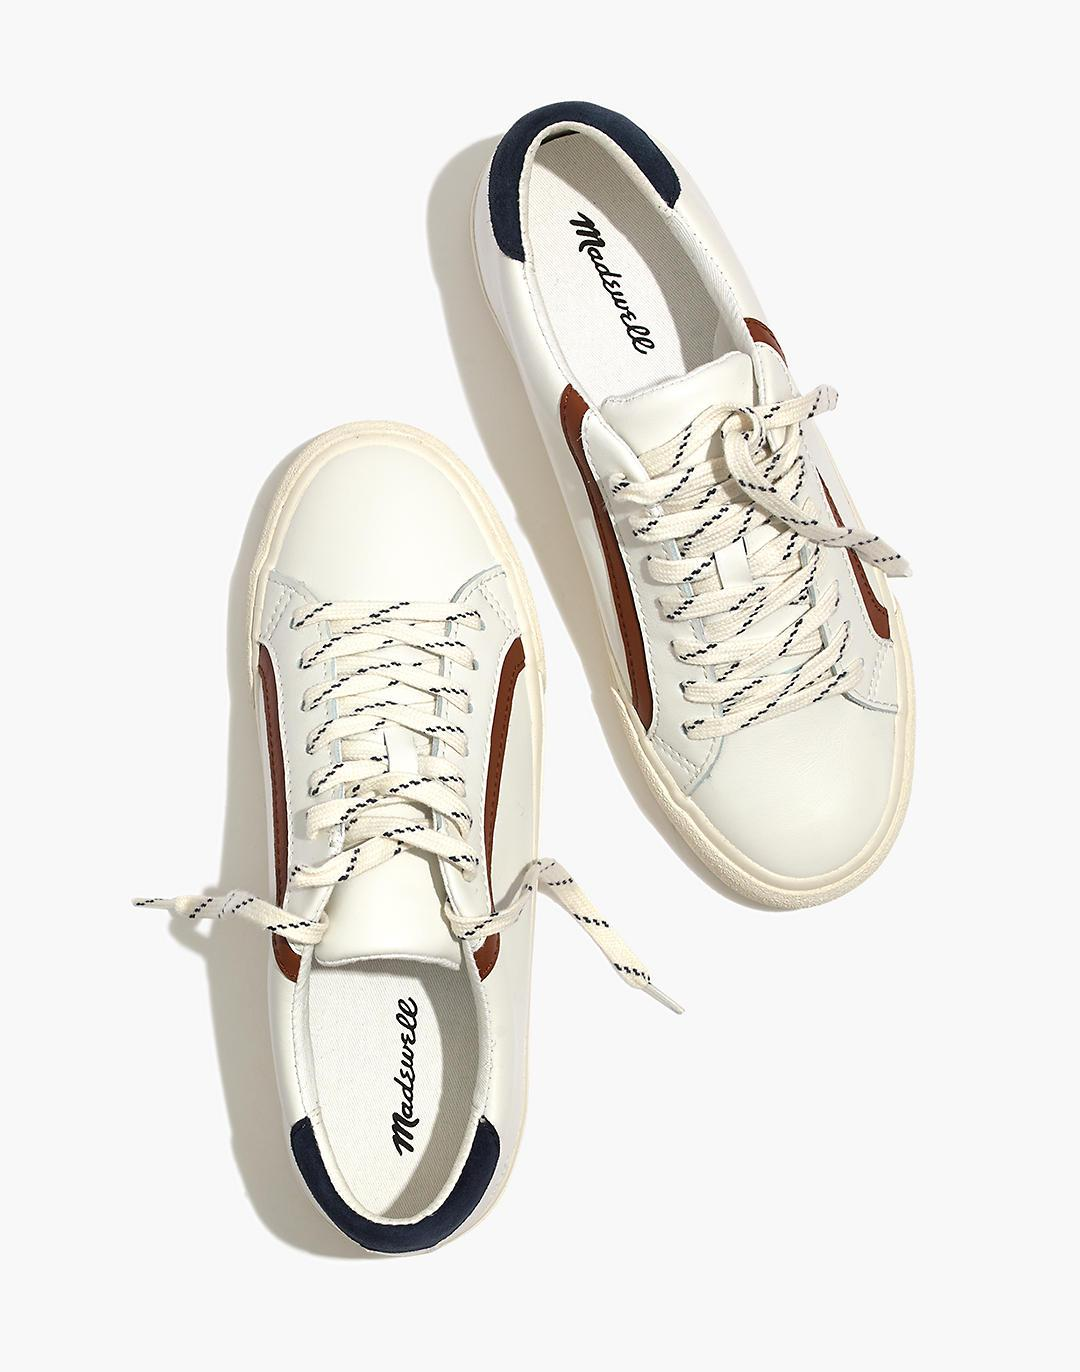 Sidewalk Low-Top Sneakers in Leather and Suede